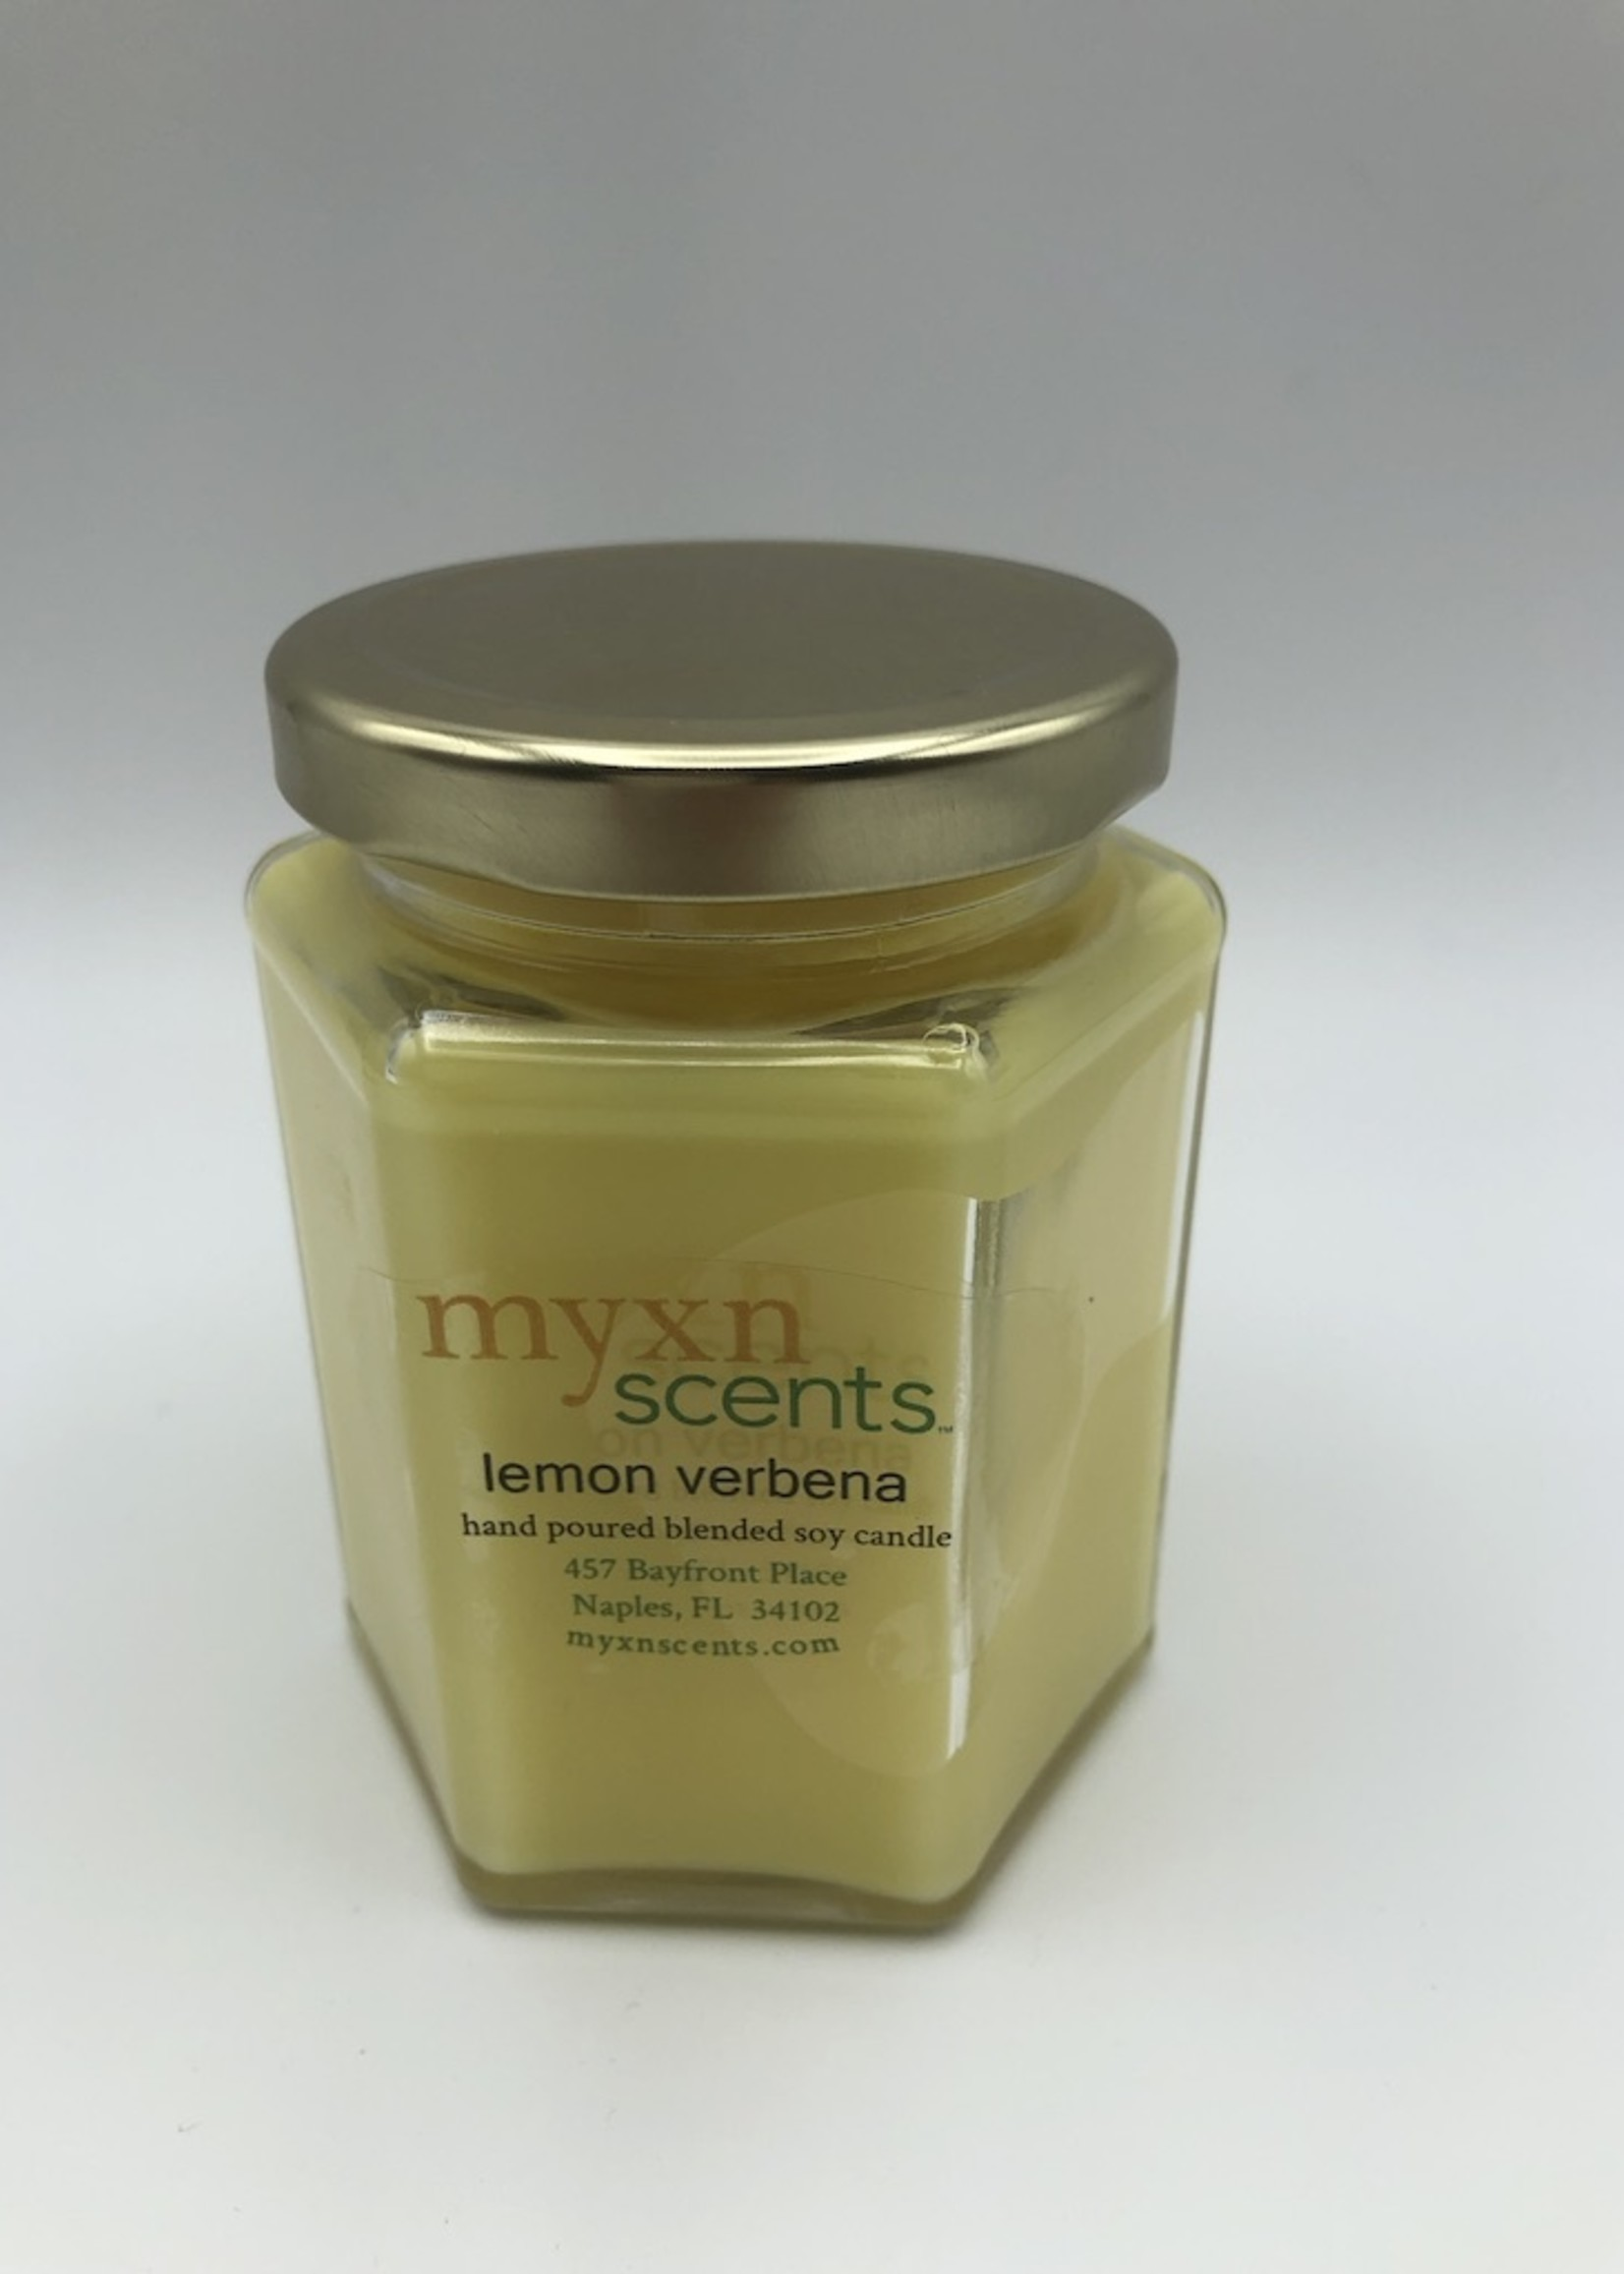 Just Makes Scents Hand Poured Candle Lemon Verbena